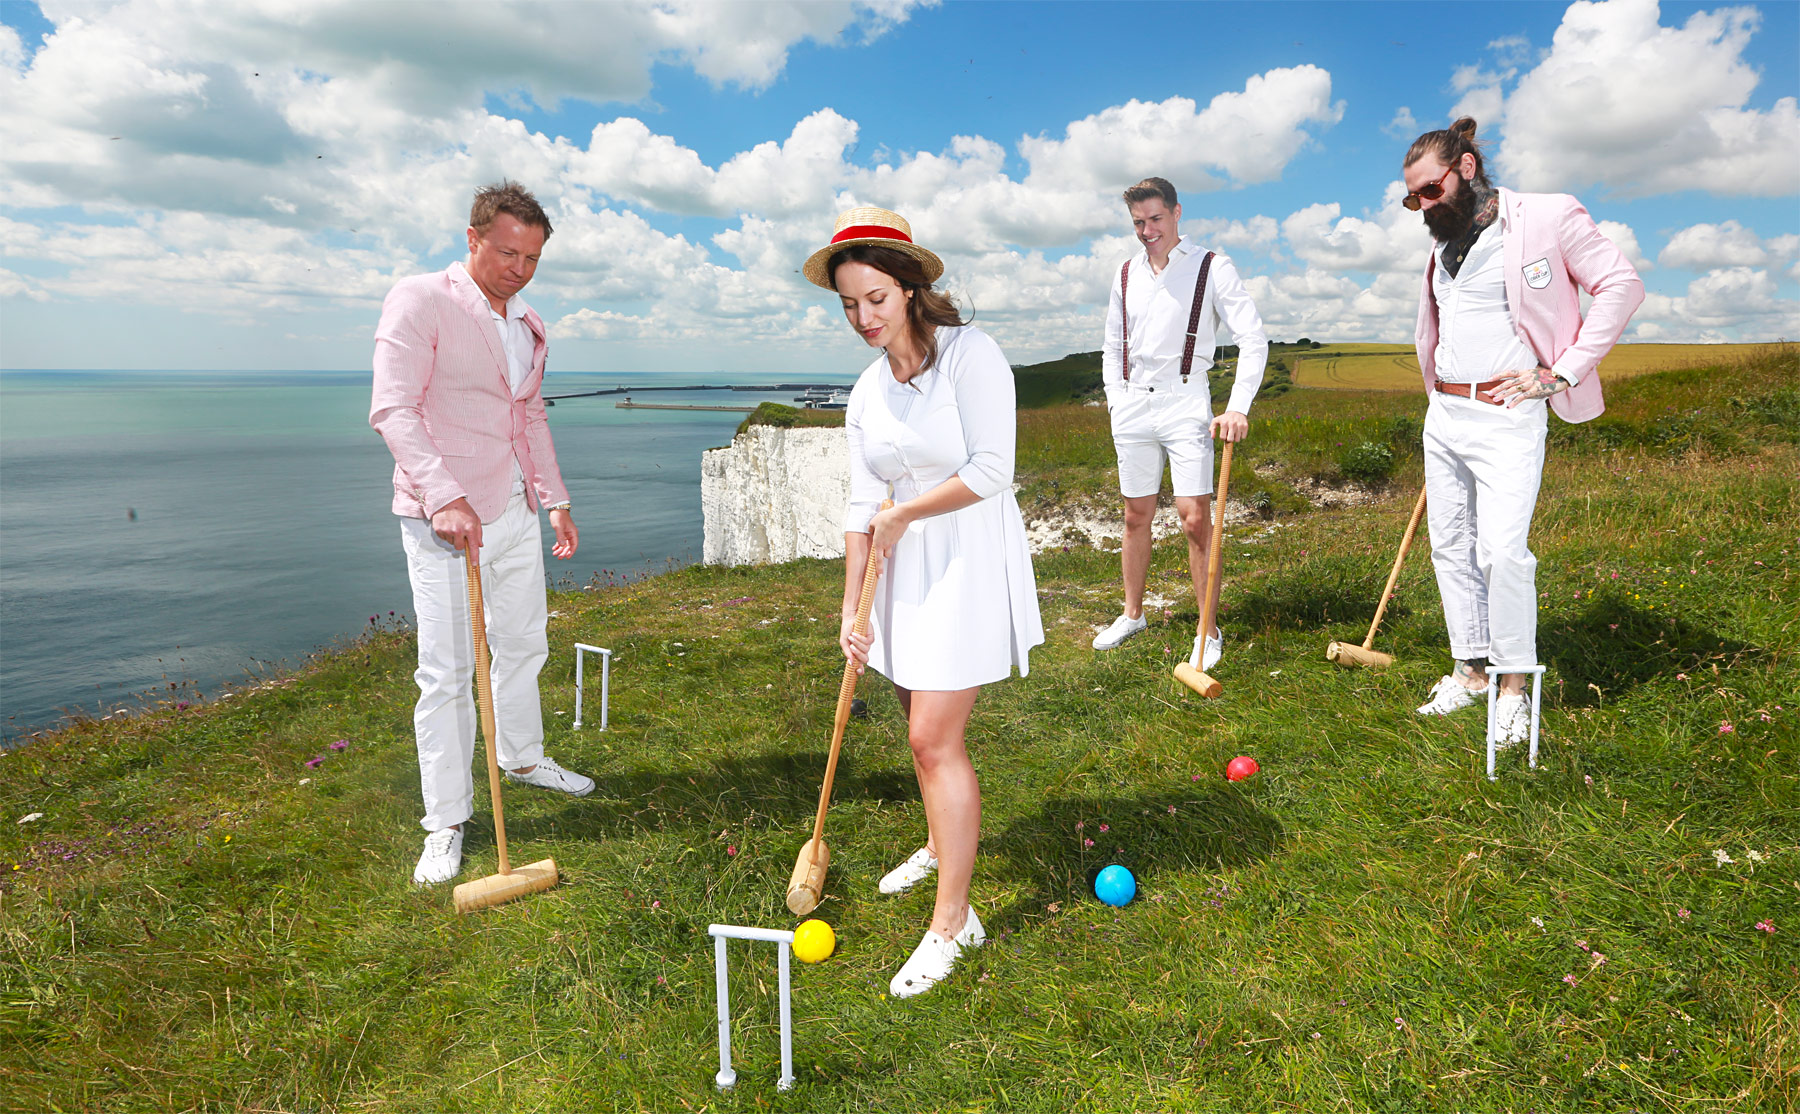 Extreme Croquet Launched As British Summer Traditions Revealed To Be Under Threat